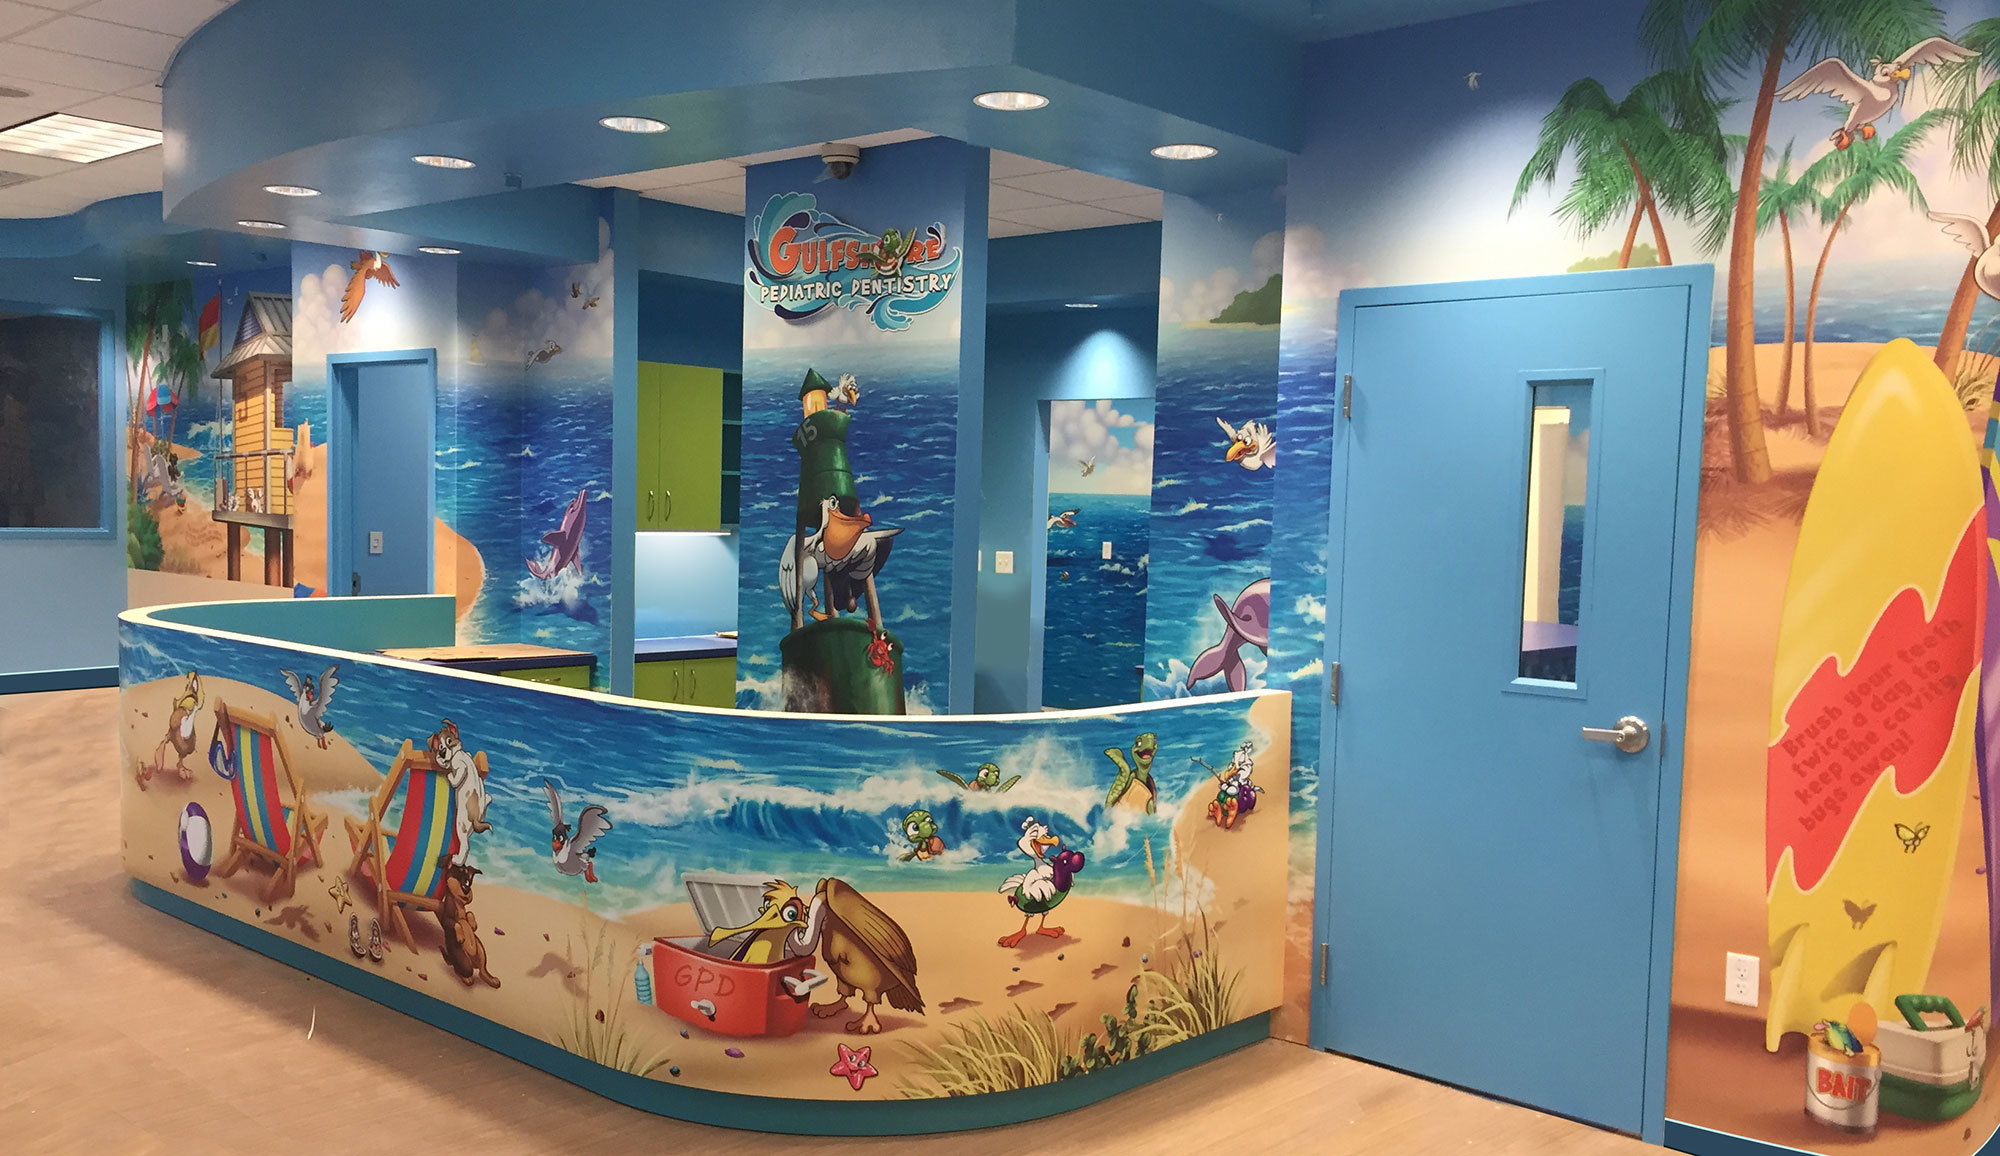 Beach Themed Environment at Gulfshore Pediatric Dentistry